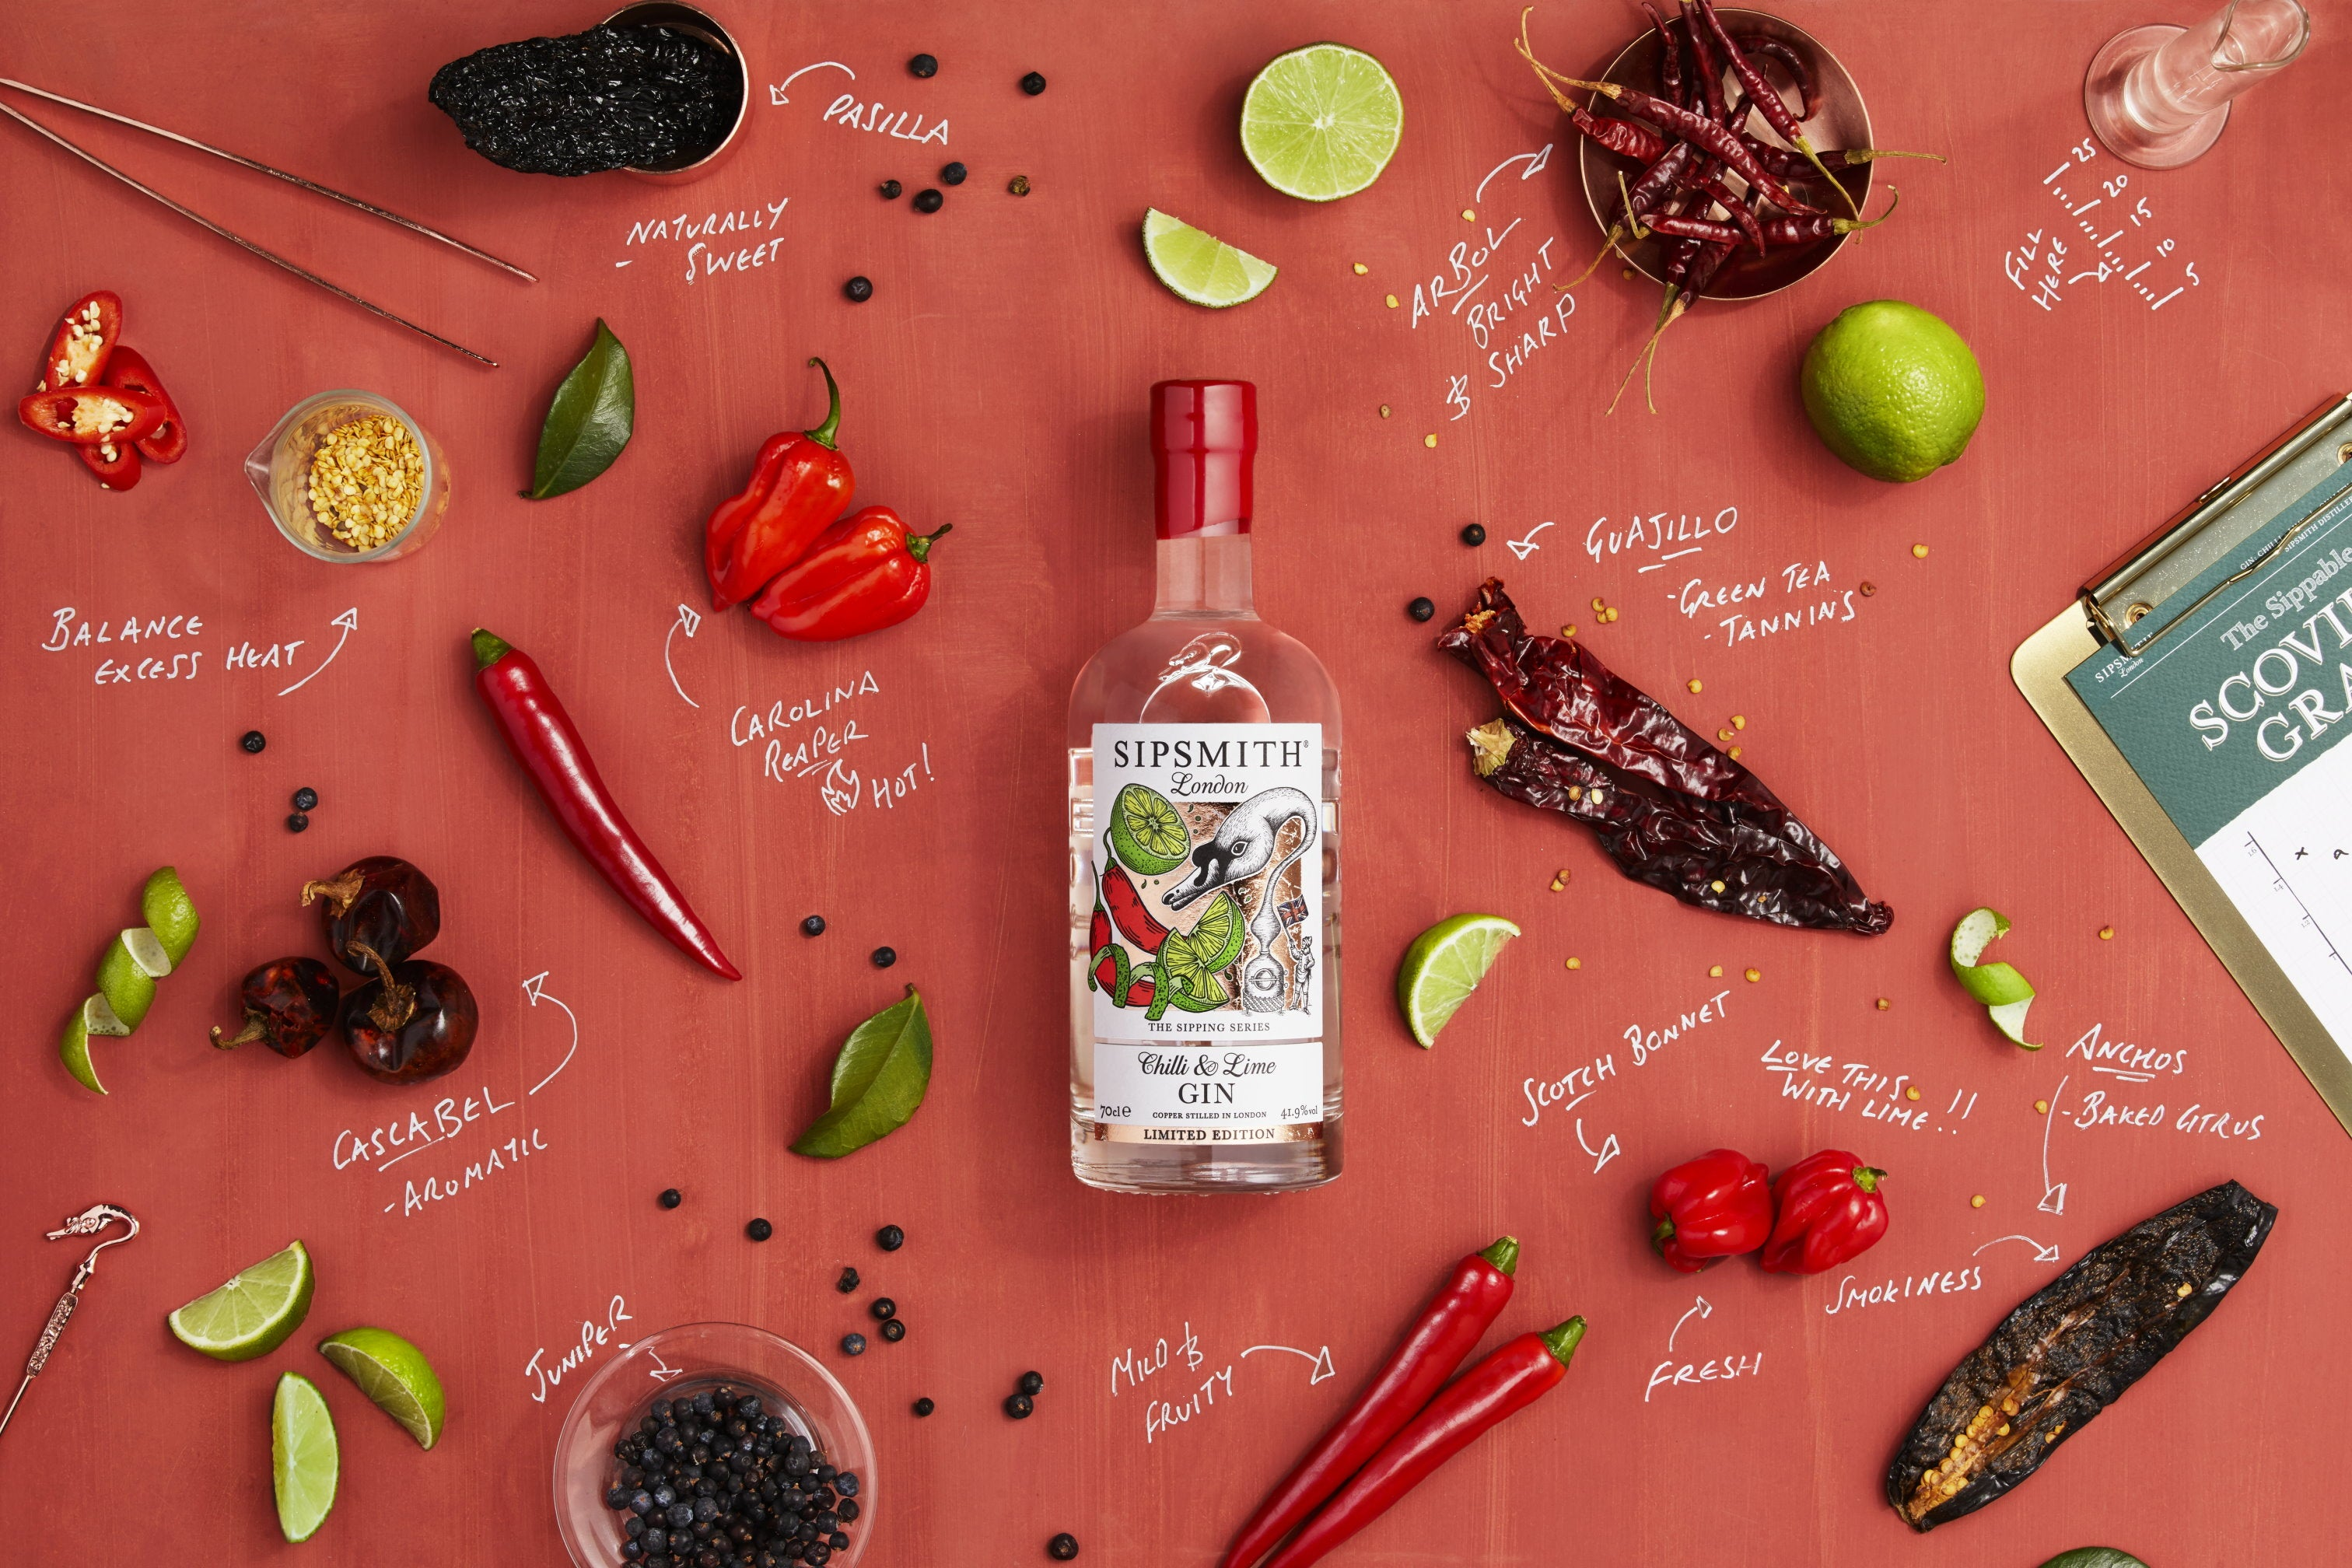 Booze Up Alcohol Delivery Service Partners with Sipsmith Gin To Provide London With Award-Winning Craft Gin